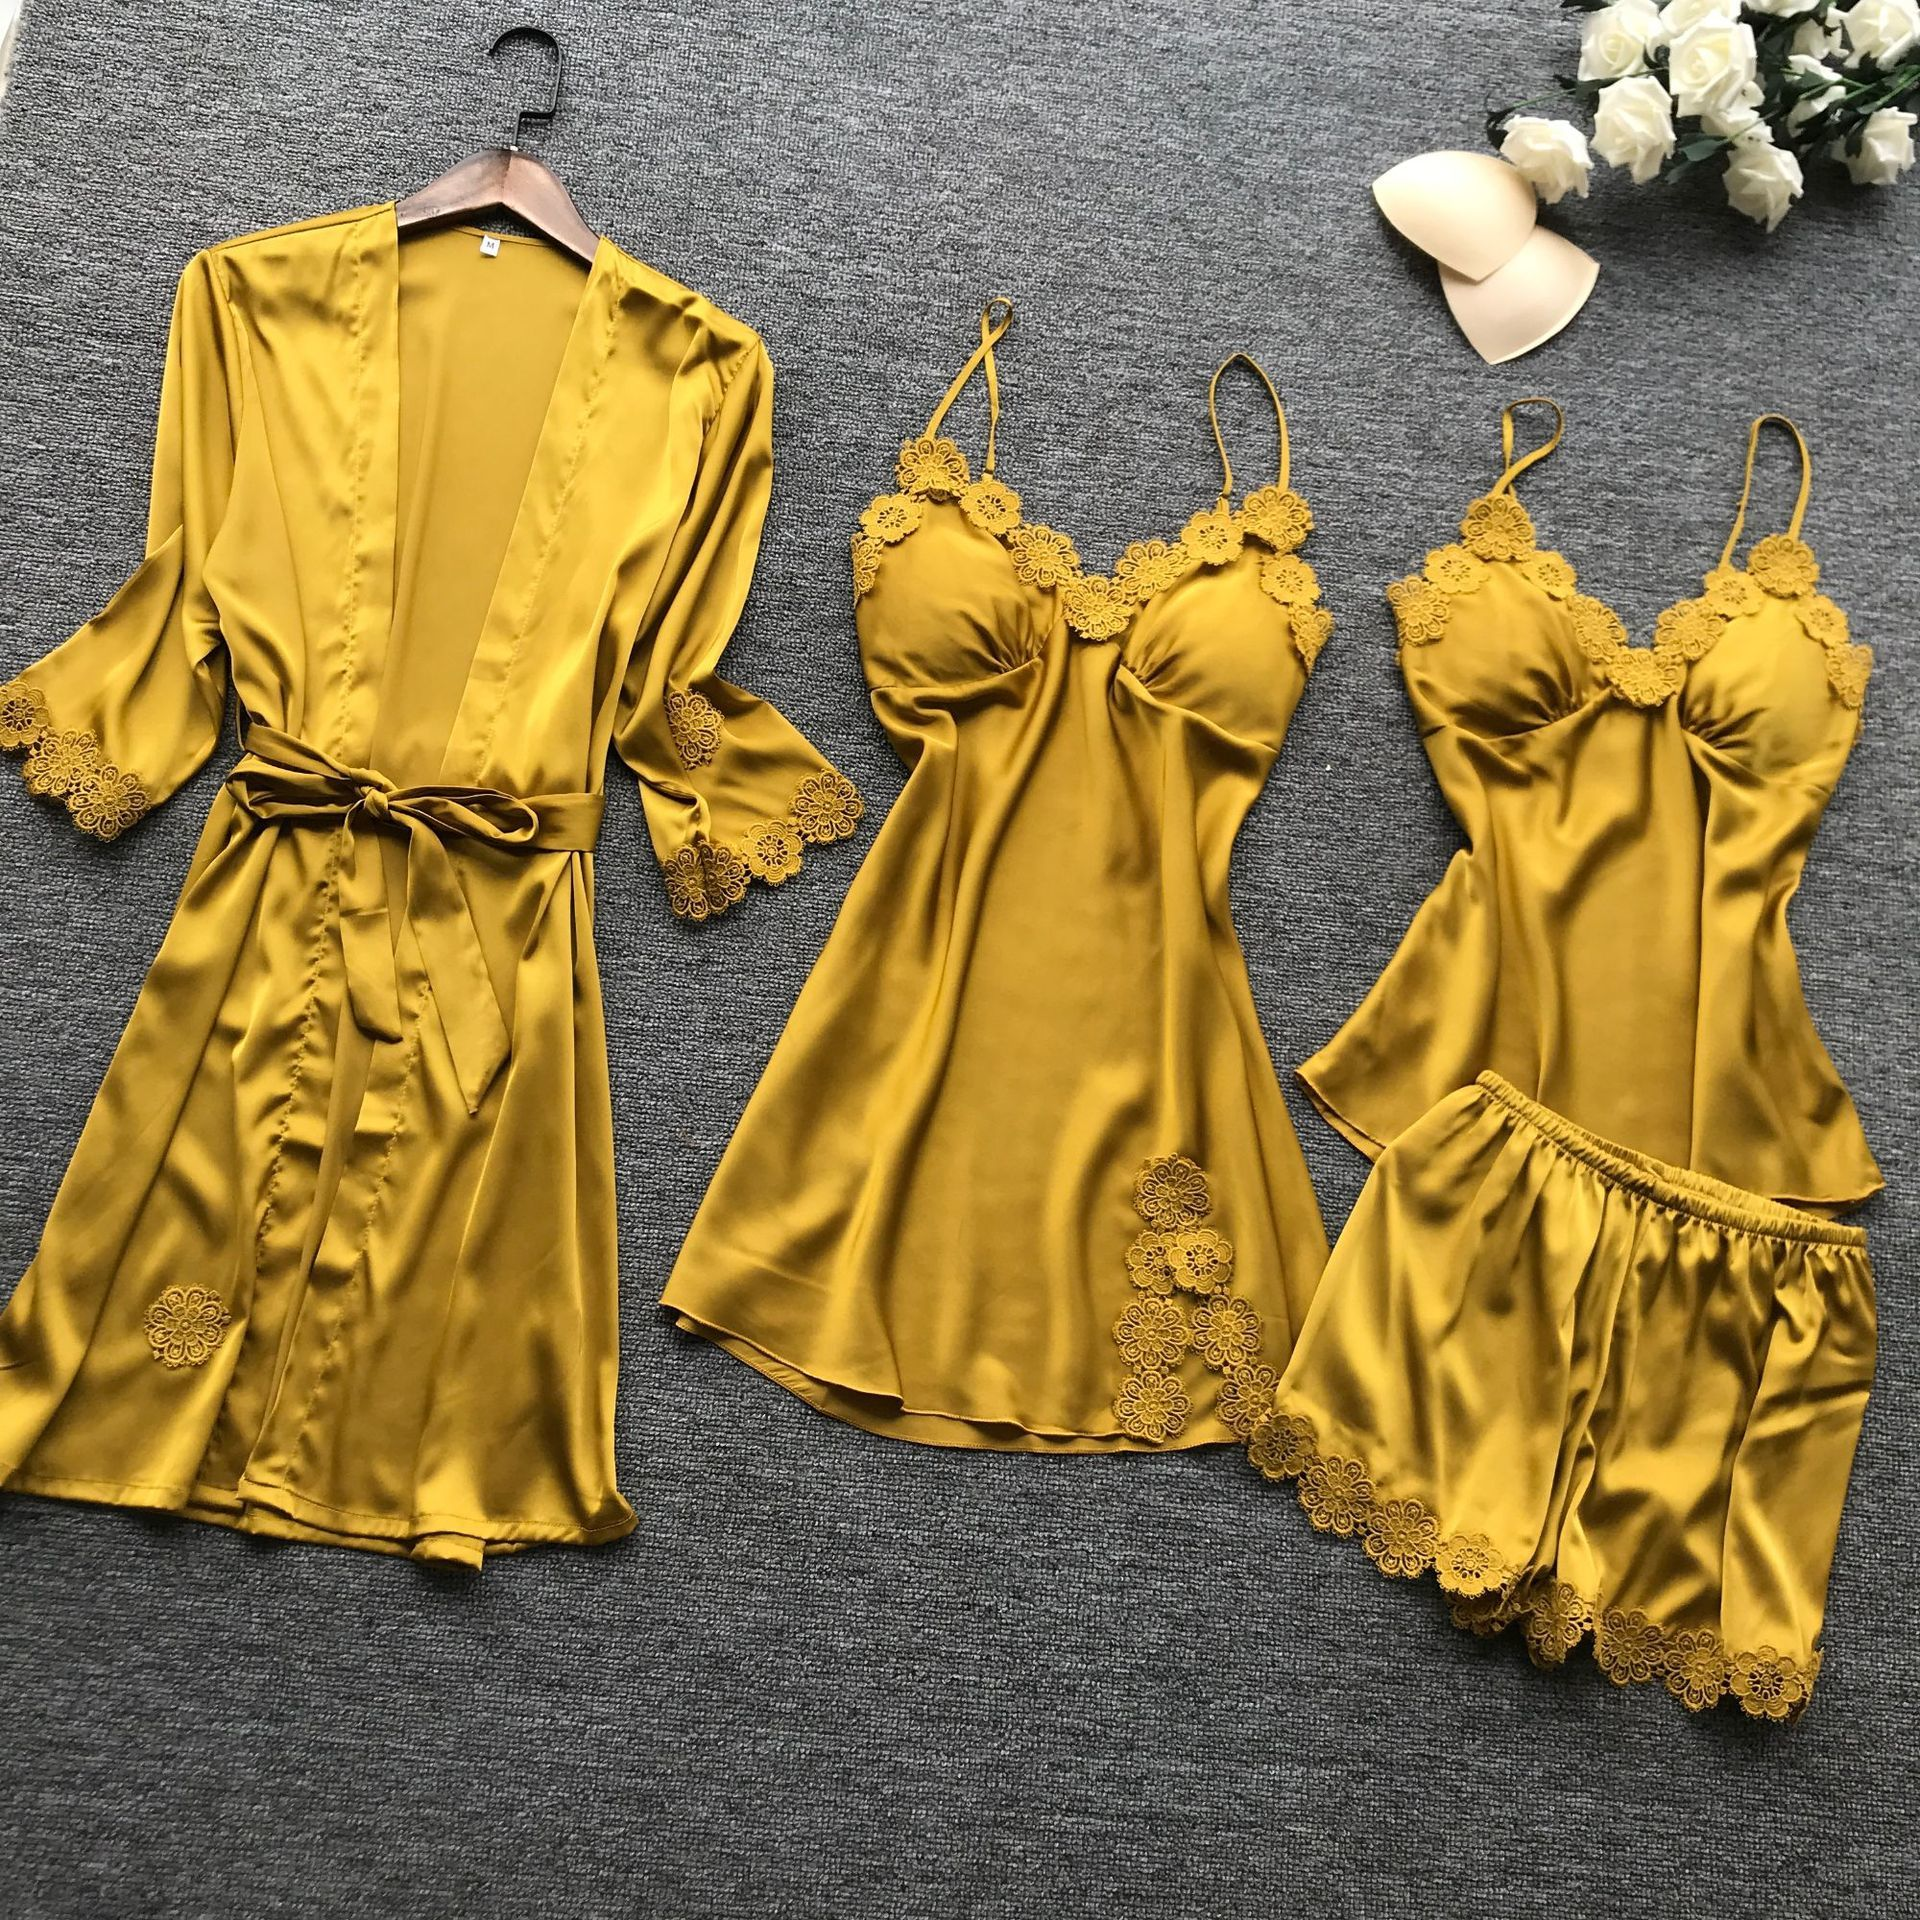 Summer New 4 Pcs Set Women Pyjama Satin High Quality Lace Sexy Sleepwear With Chest Pad Pajamas